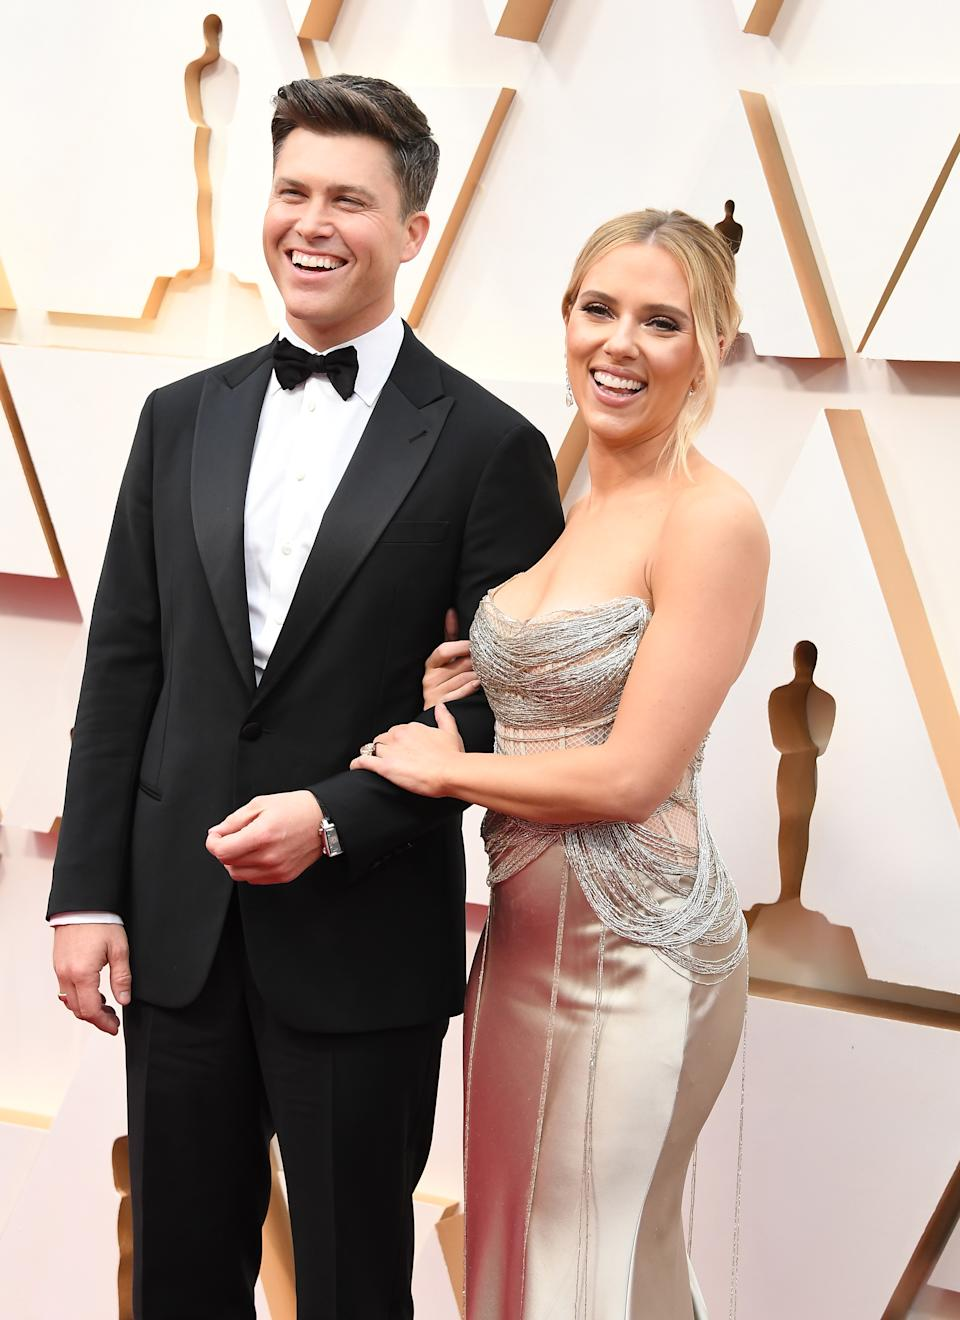 HOLLYWOOD, CALIFORNIA - FEBRUARY 09: Colin Jost and Scarlett Johansson arrives at the 92nd Annual Academy Awards at Hollywood and Highland on February 09, 2020 in Hollywood, California. (Photo by Steve Granitz/WireImage)